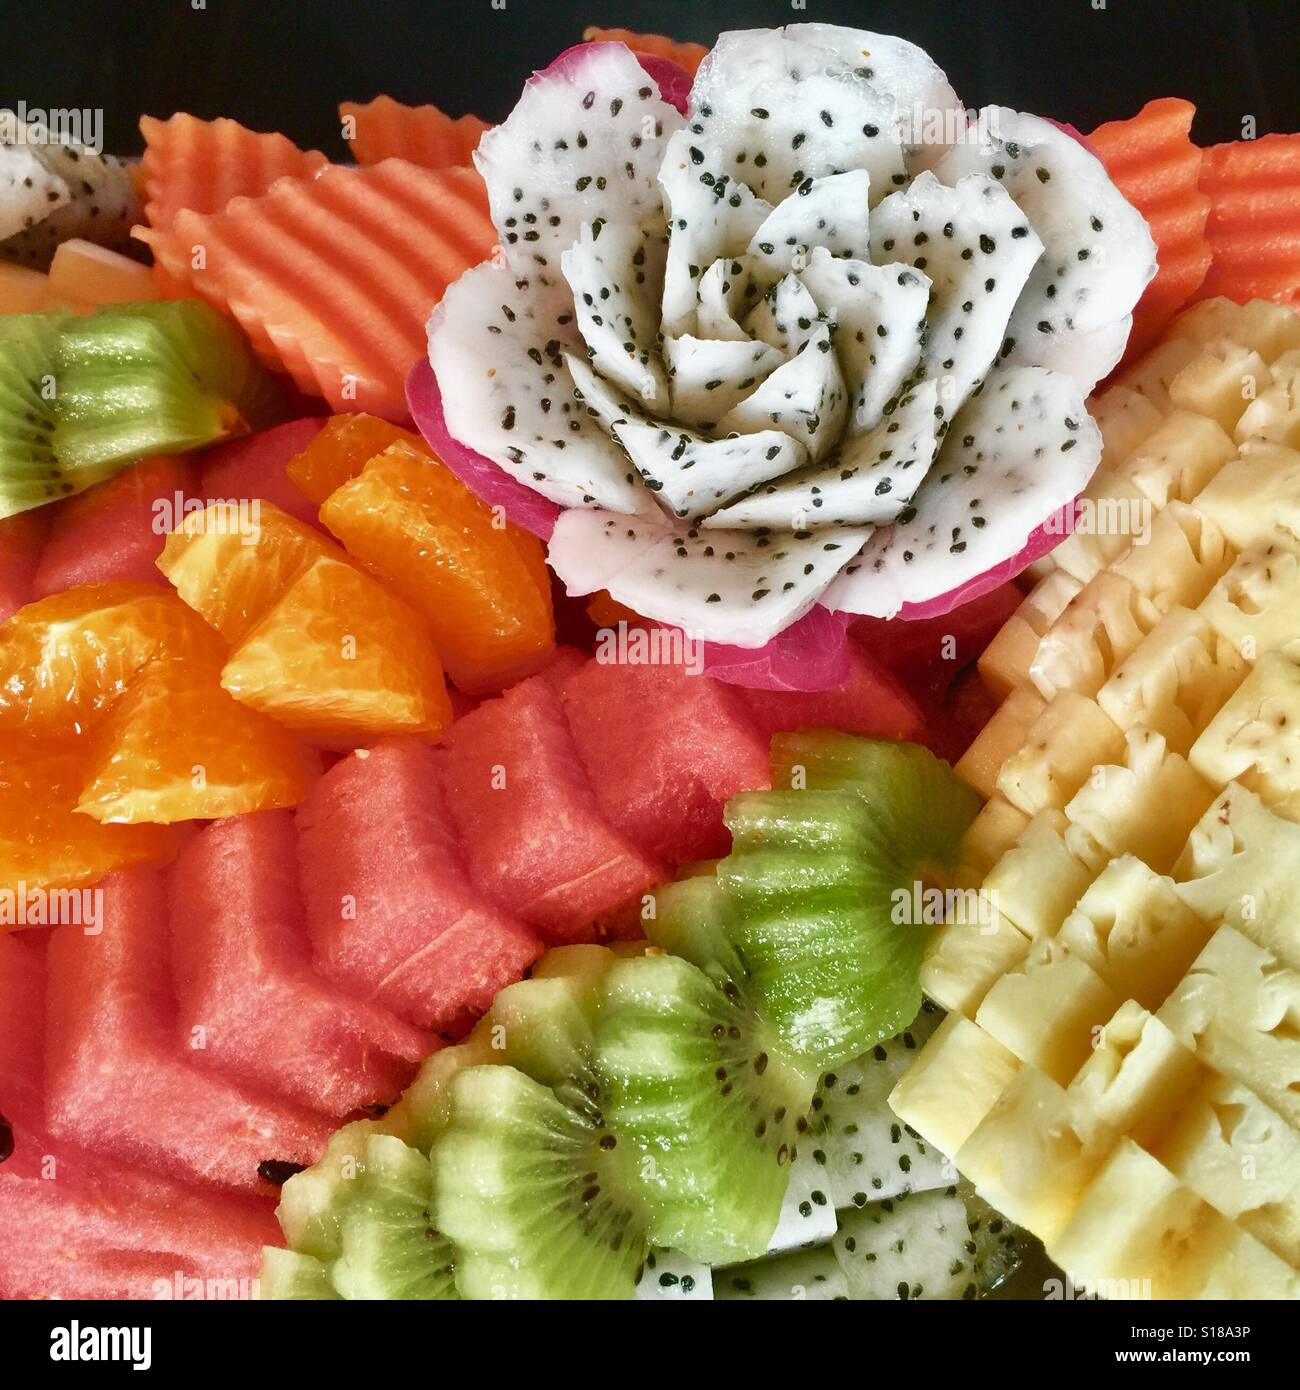 Thailand Fruit Wholesaler Email Mail: A Colourful Plate Of Thai Fruits Carving- Dragon Fruit